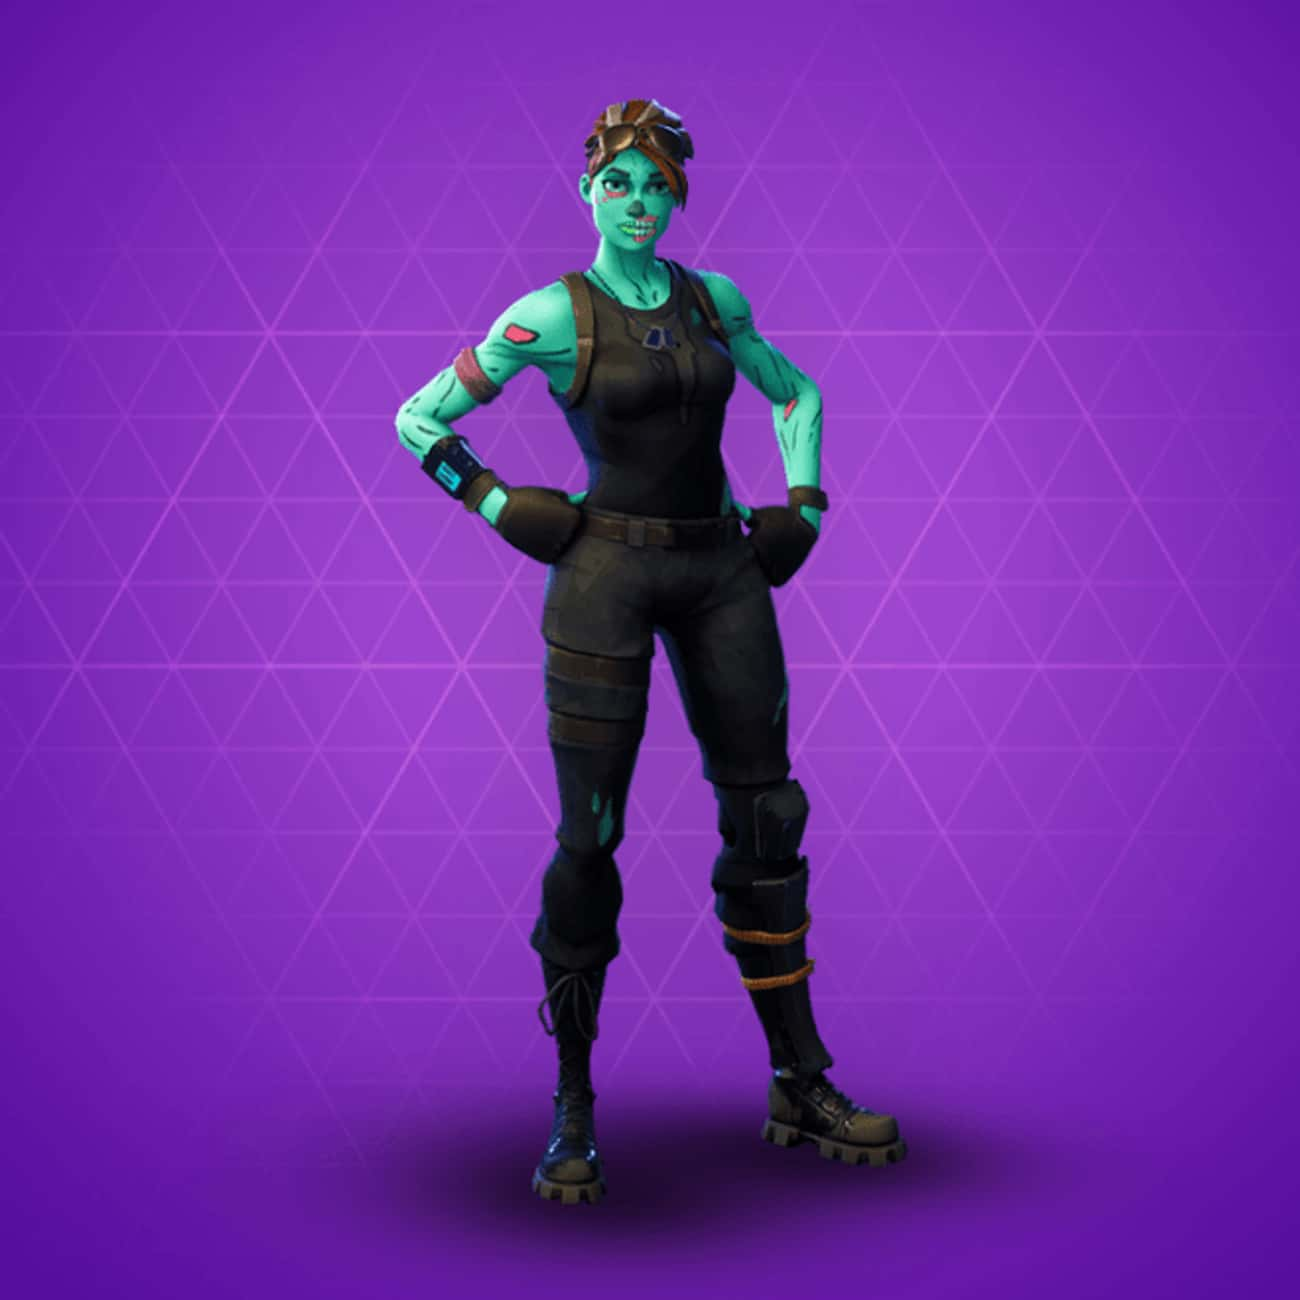 Ghoul Trooper is listed (or ranked) 1 on the list The Best Green Skins In 'Fortnite'